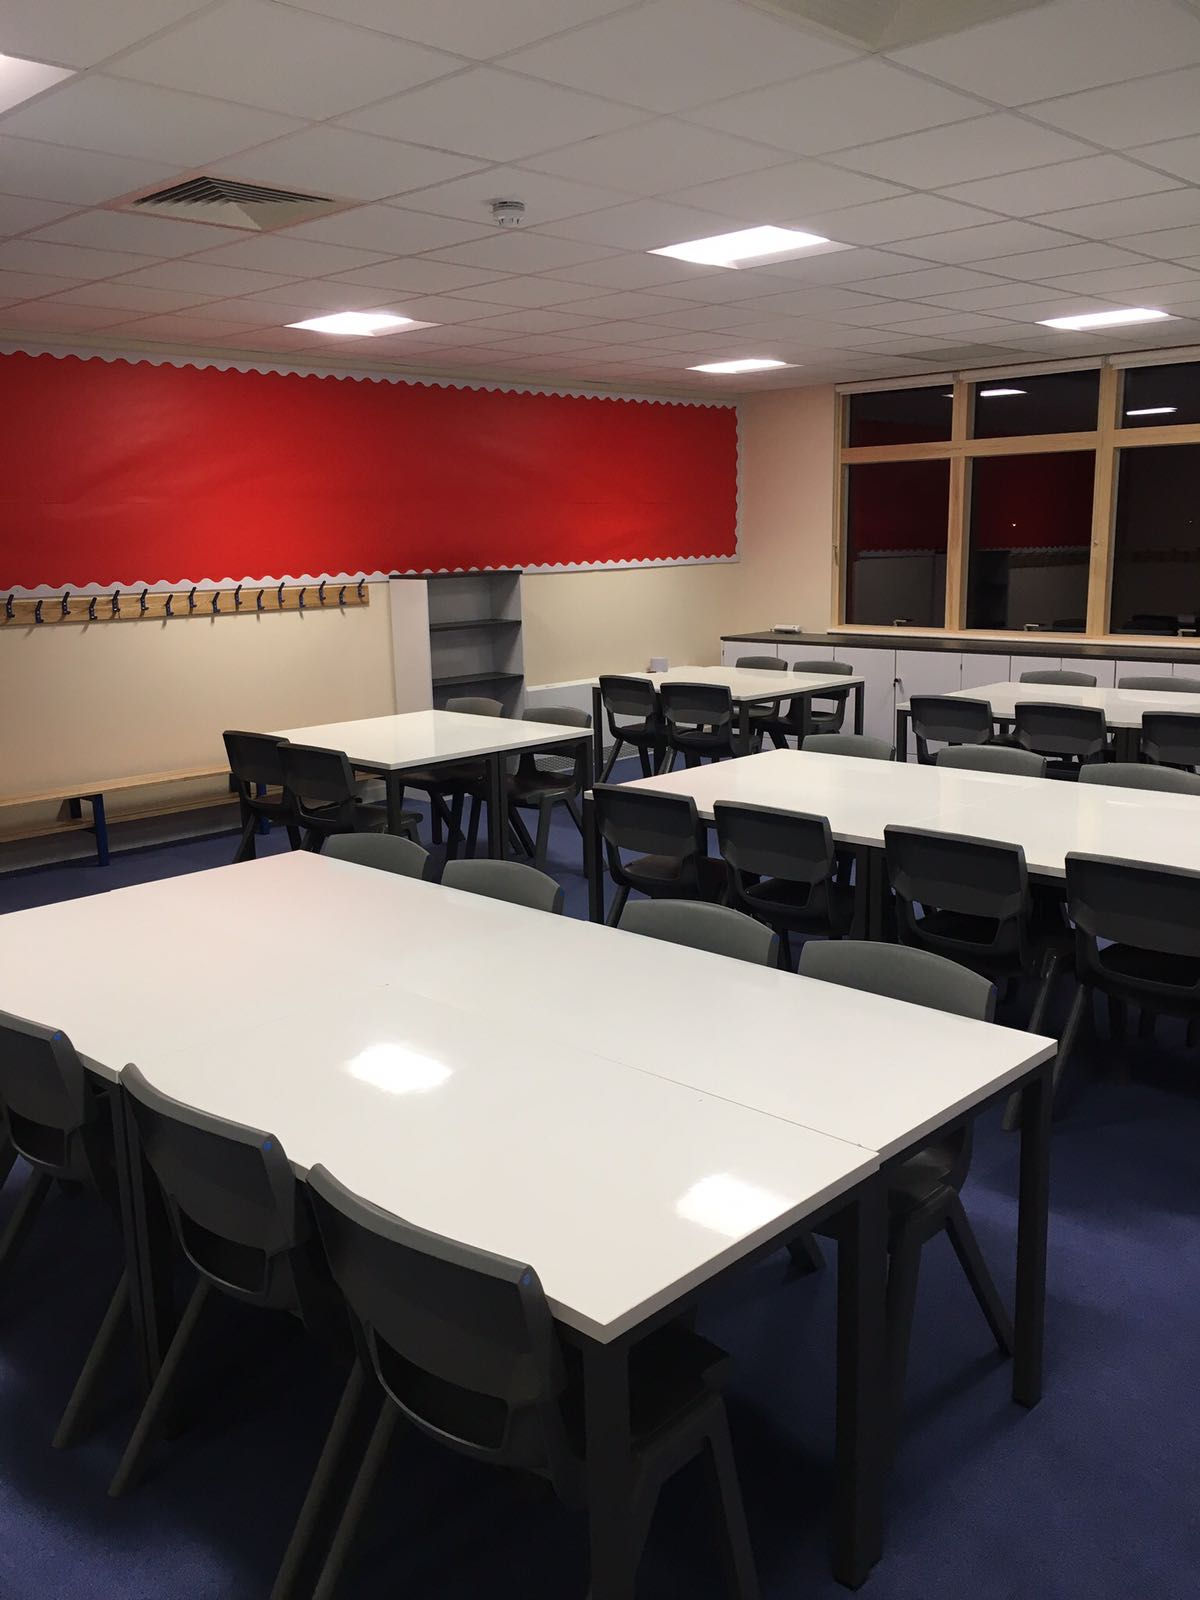 Classroom refurb postura plus chairs